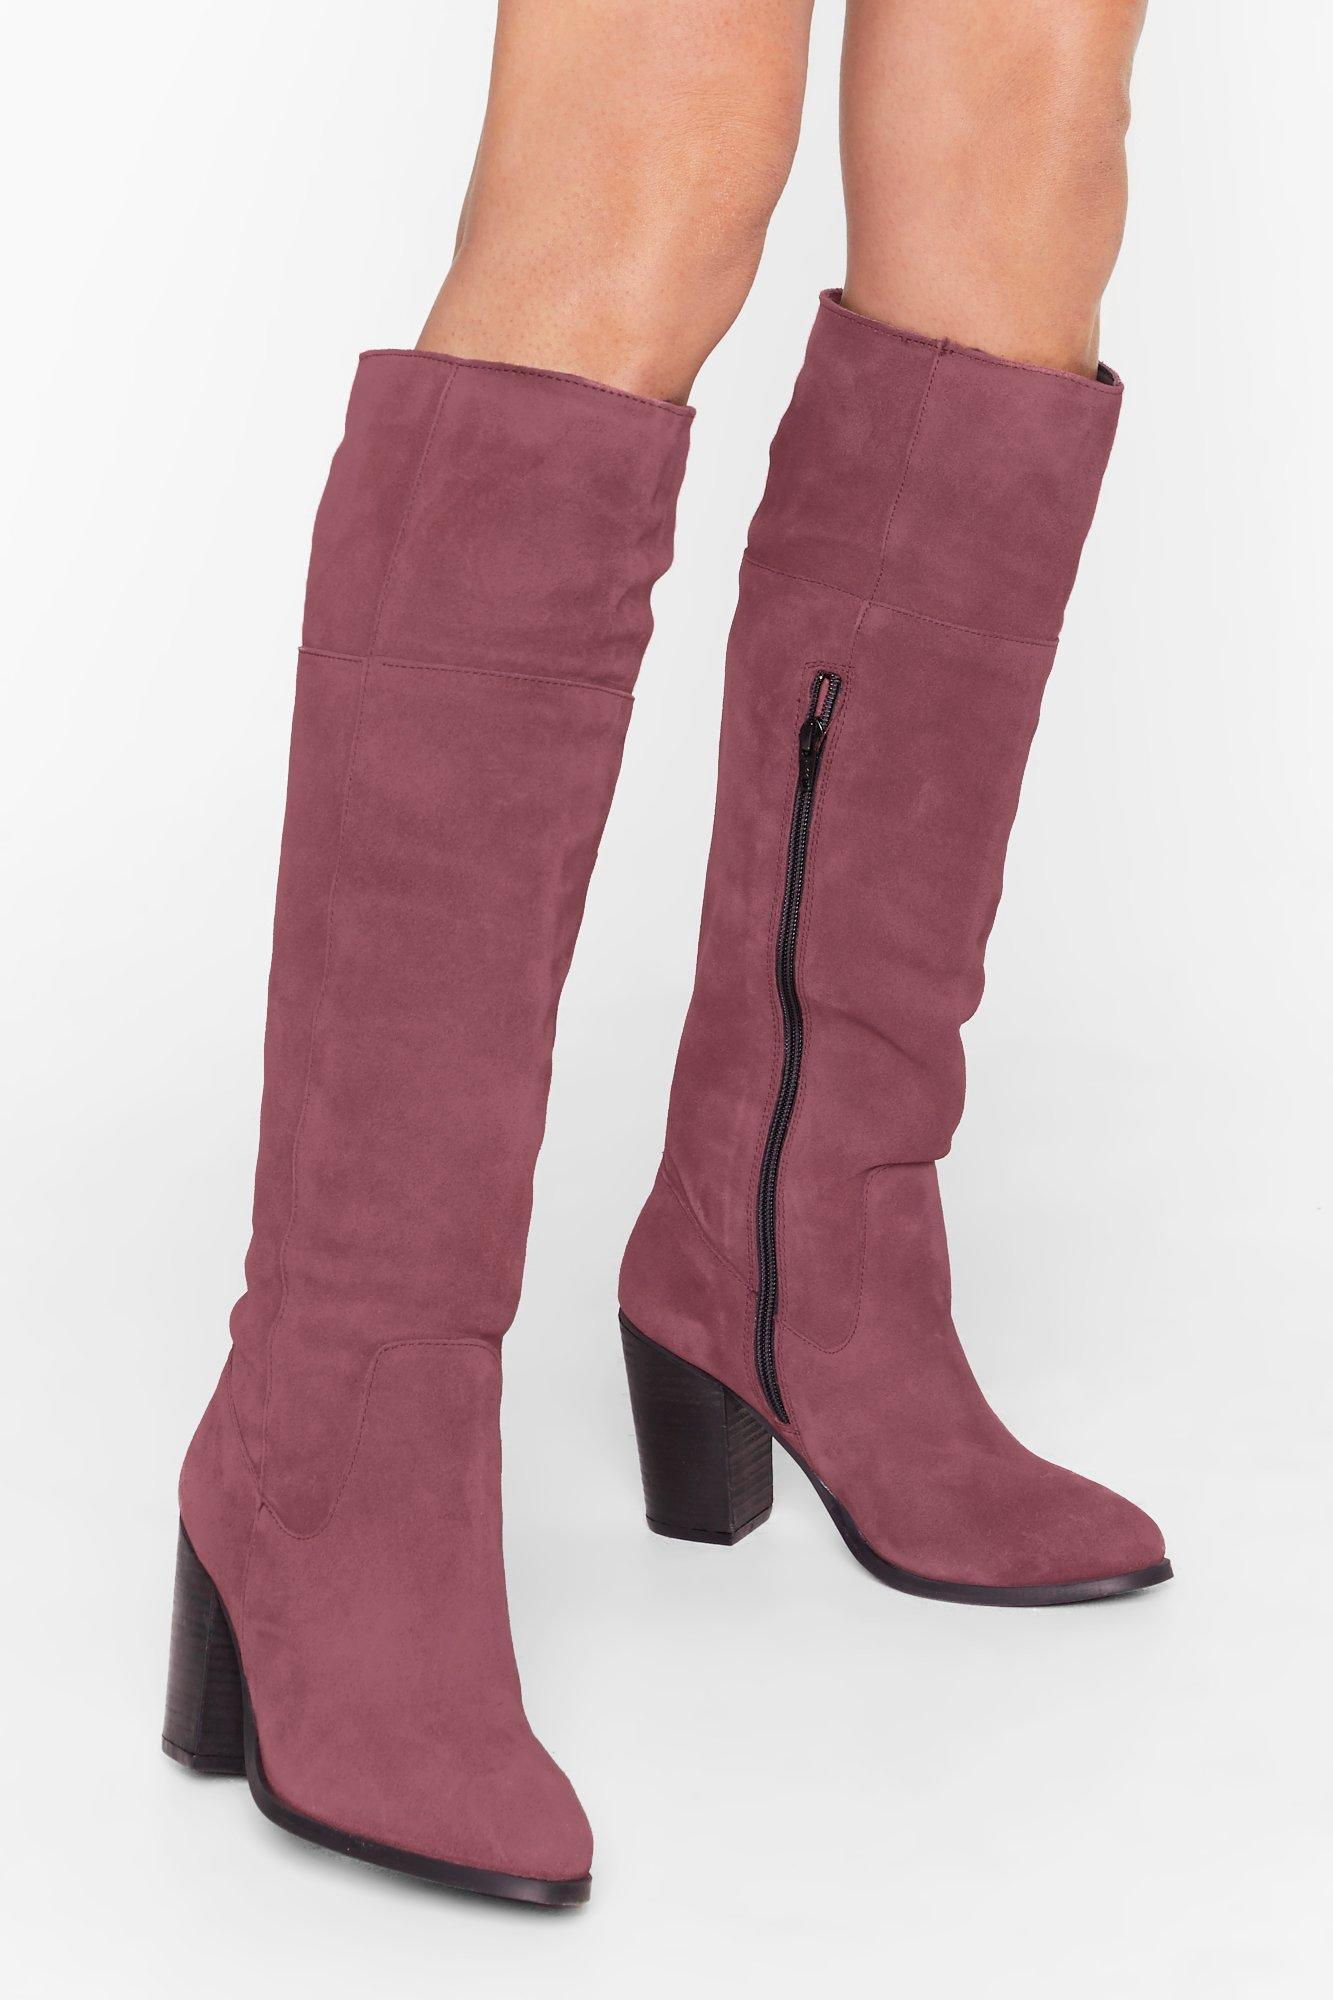 Image of We Finally Suede It Knee-High Heeled Boots